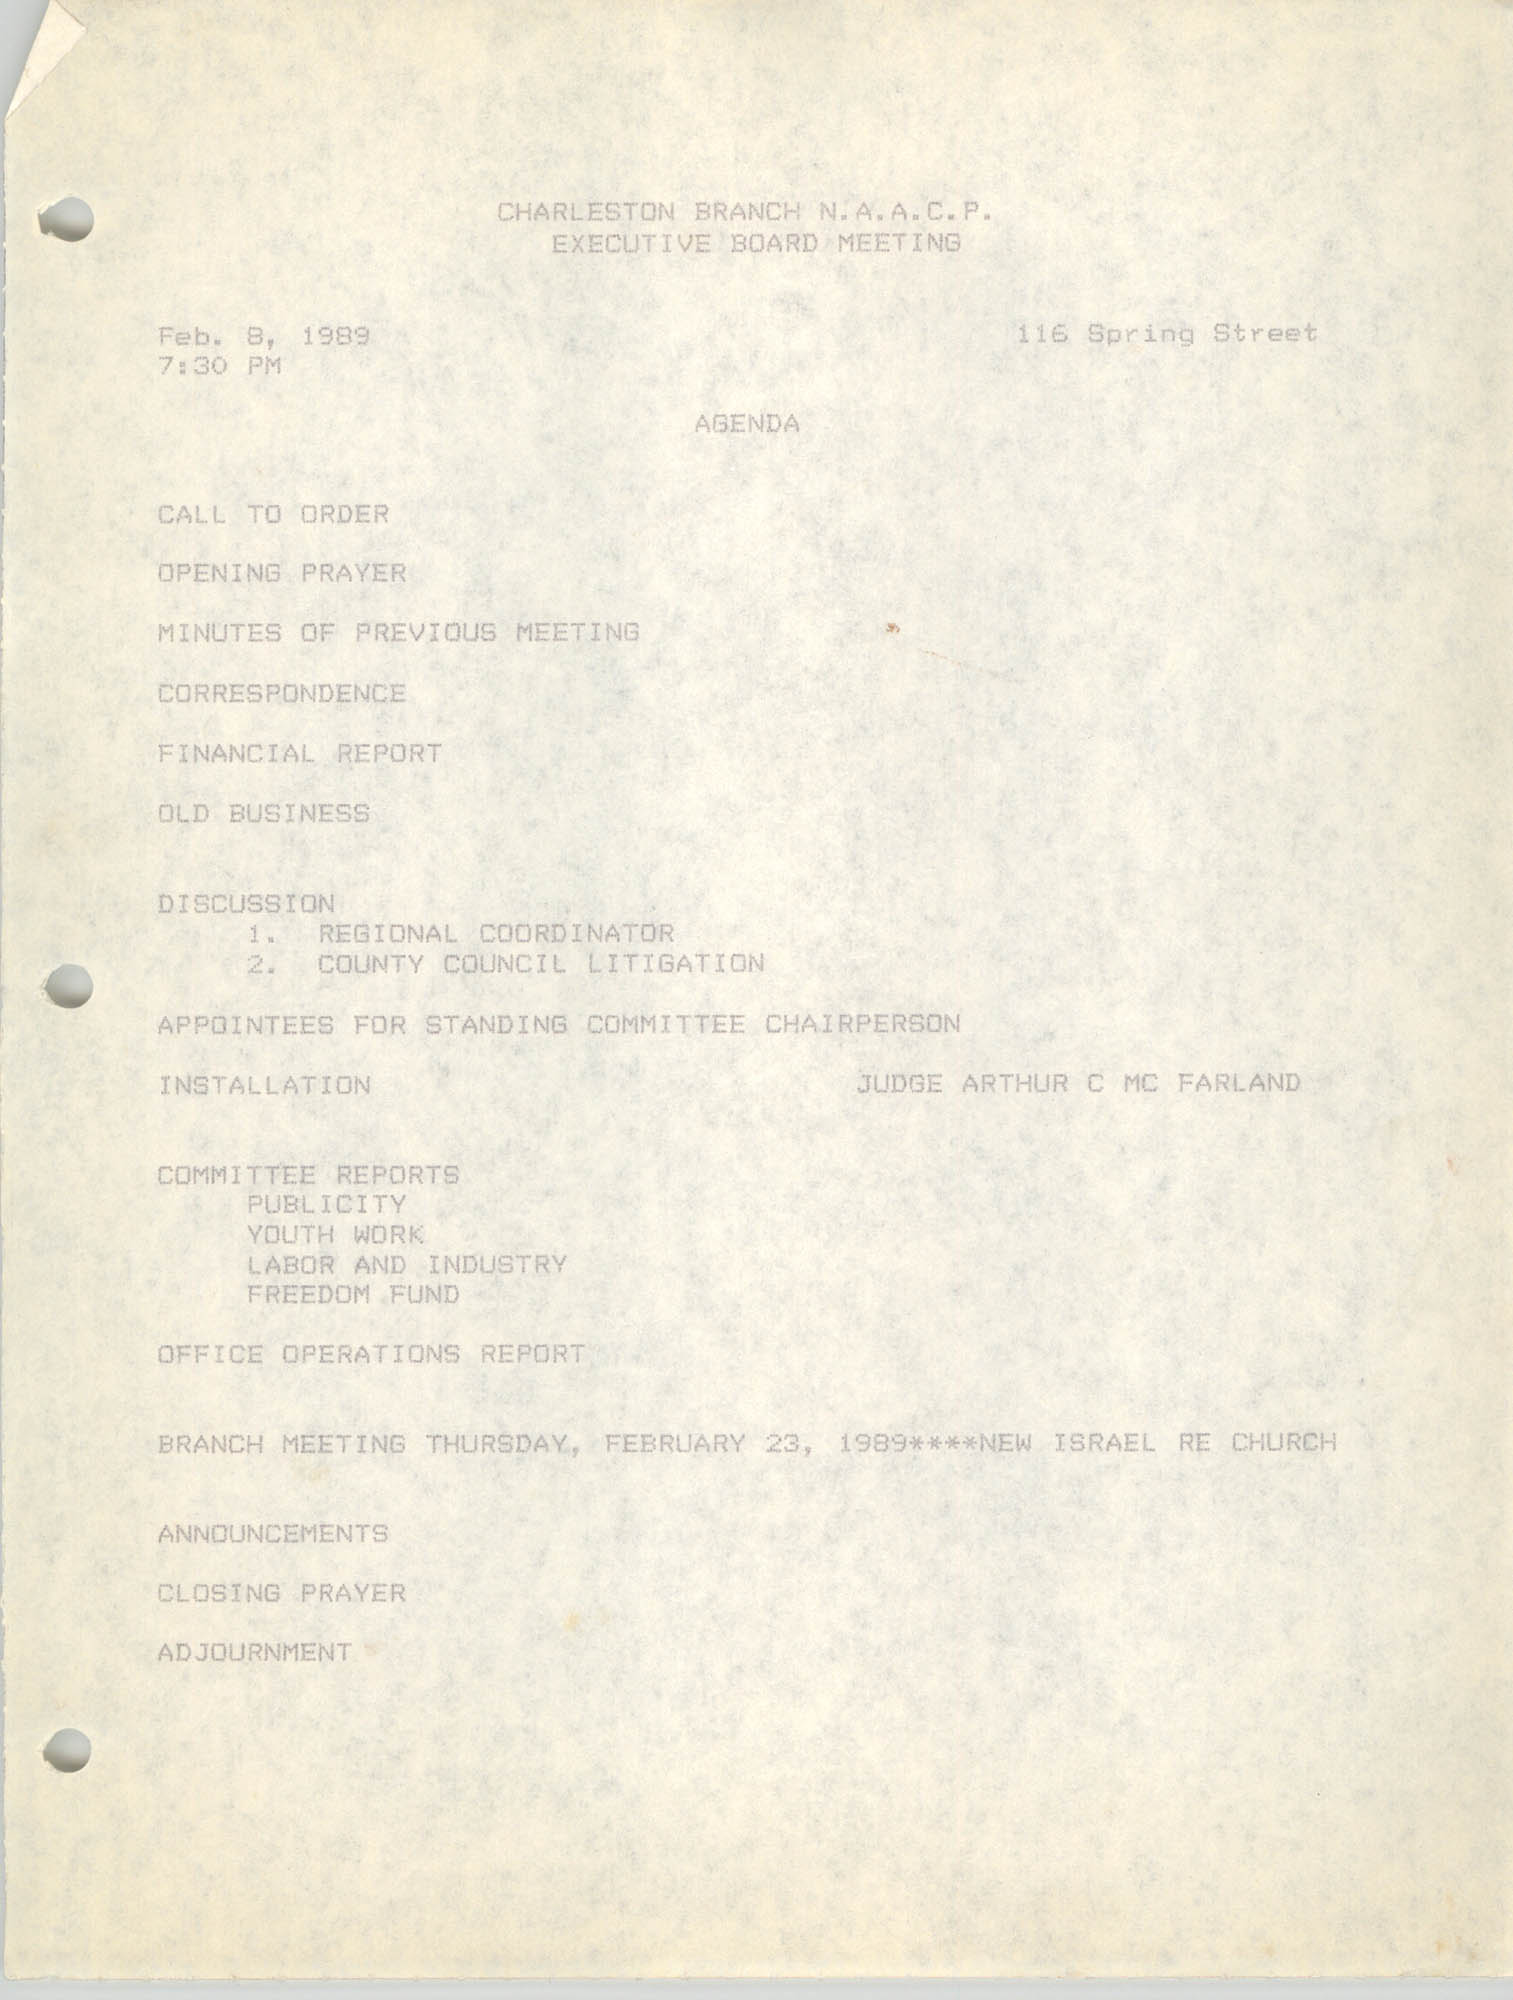 Agenda, Charleston Branch of the NAACP, Executive Board Meeting, February 8, 1989